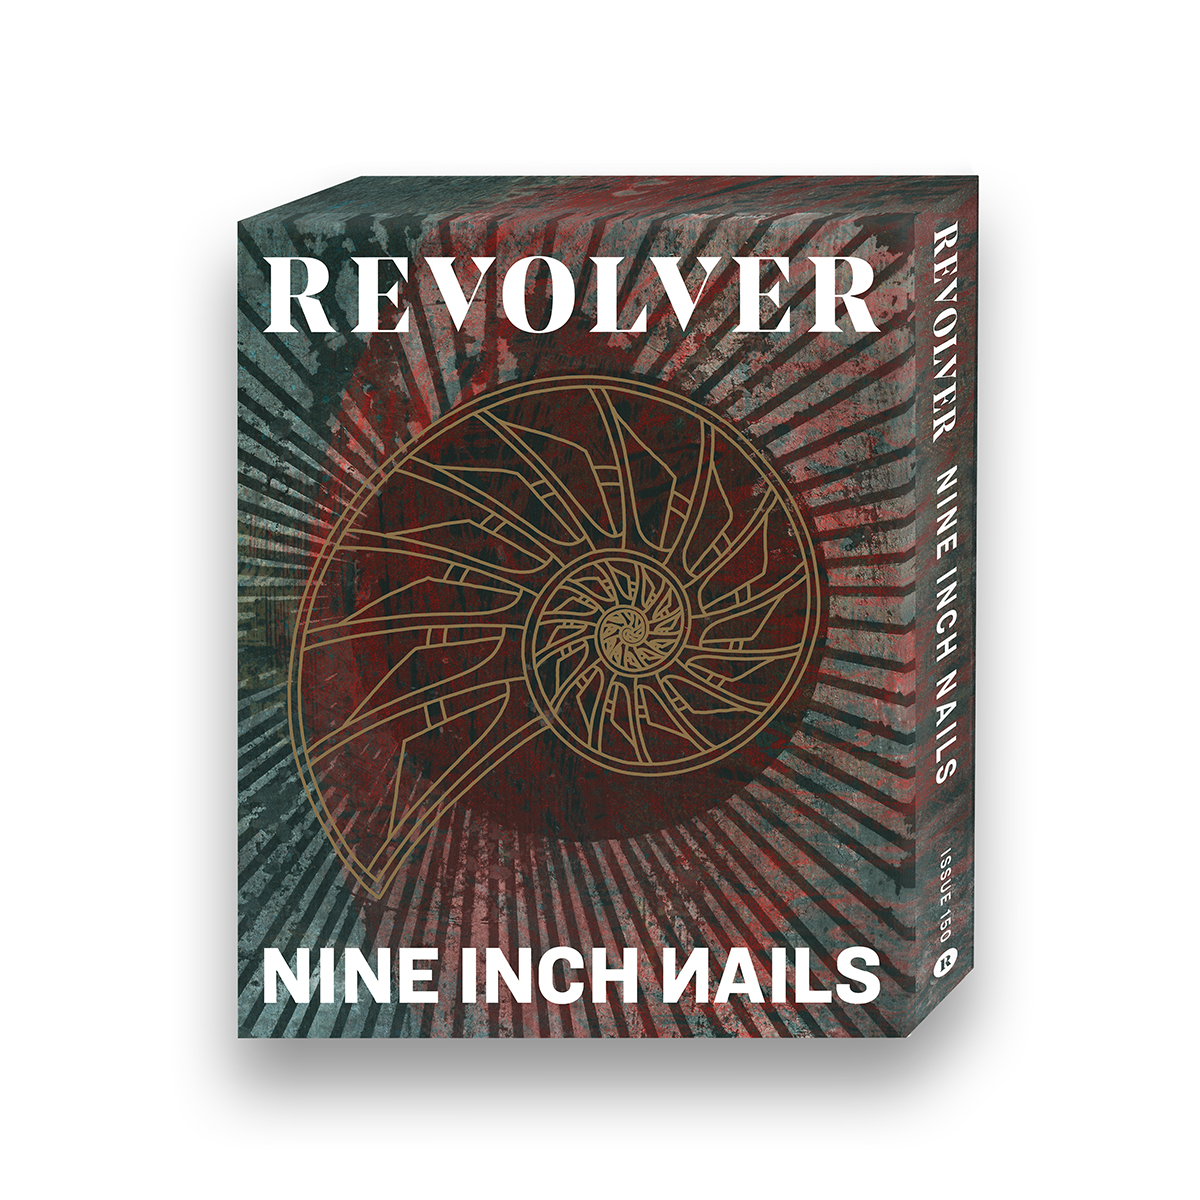 DEC/JAN 2020 ISSUE FEATURING NINE INCH NAILS — BOX SET | Shop the Revolver Magazine Official Store